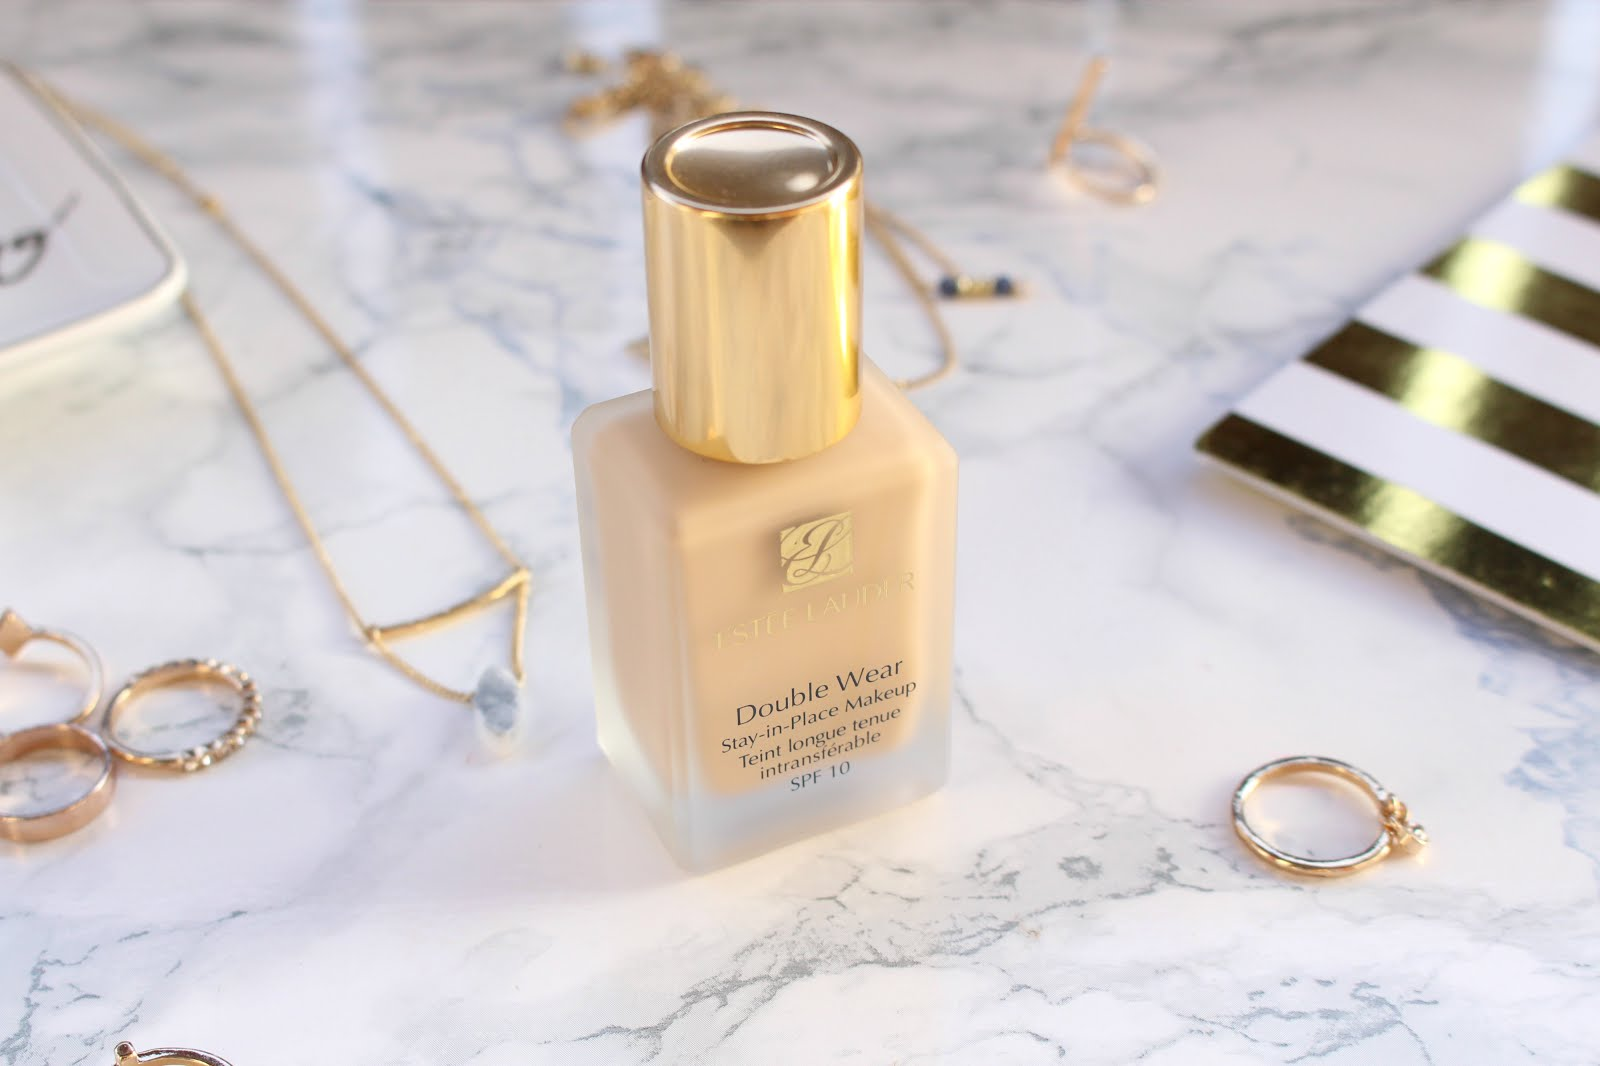 estee lauder, estee lauder foundation, estee lauder mac, estee lauder nc 15, estee lauder nc 20, estee lauder double wear, estee lauder double wear foundation, estee lauder desert beige, estee lauder double wear desert beige, estee lauder double wear foundation desert beige, estee lauder double wear swatches, nelly ray, estee lauder worth the hype